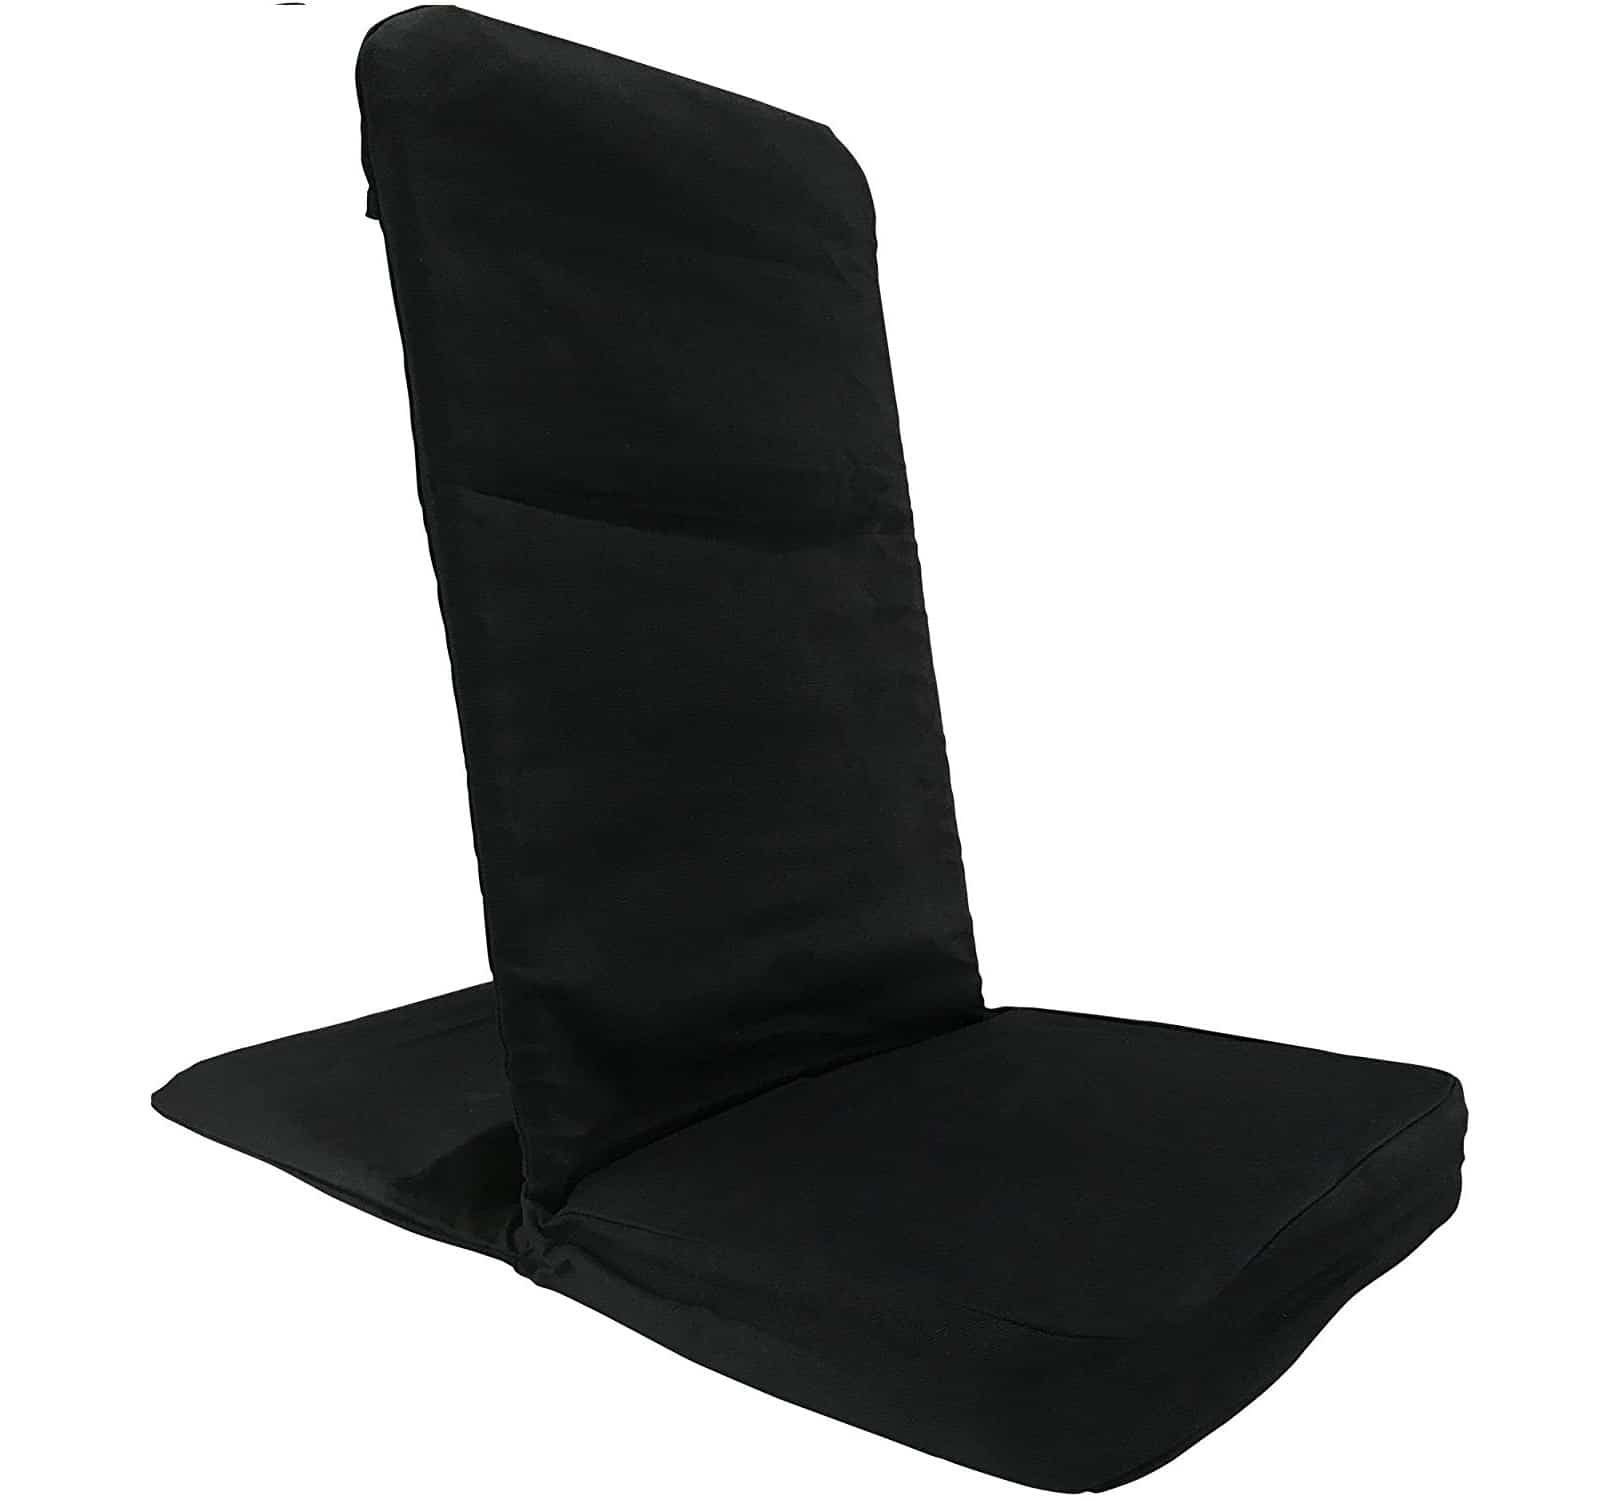 4.BackJack Floor Chair (Original BackJack Chairs) - Standard Size (Navy)